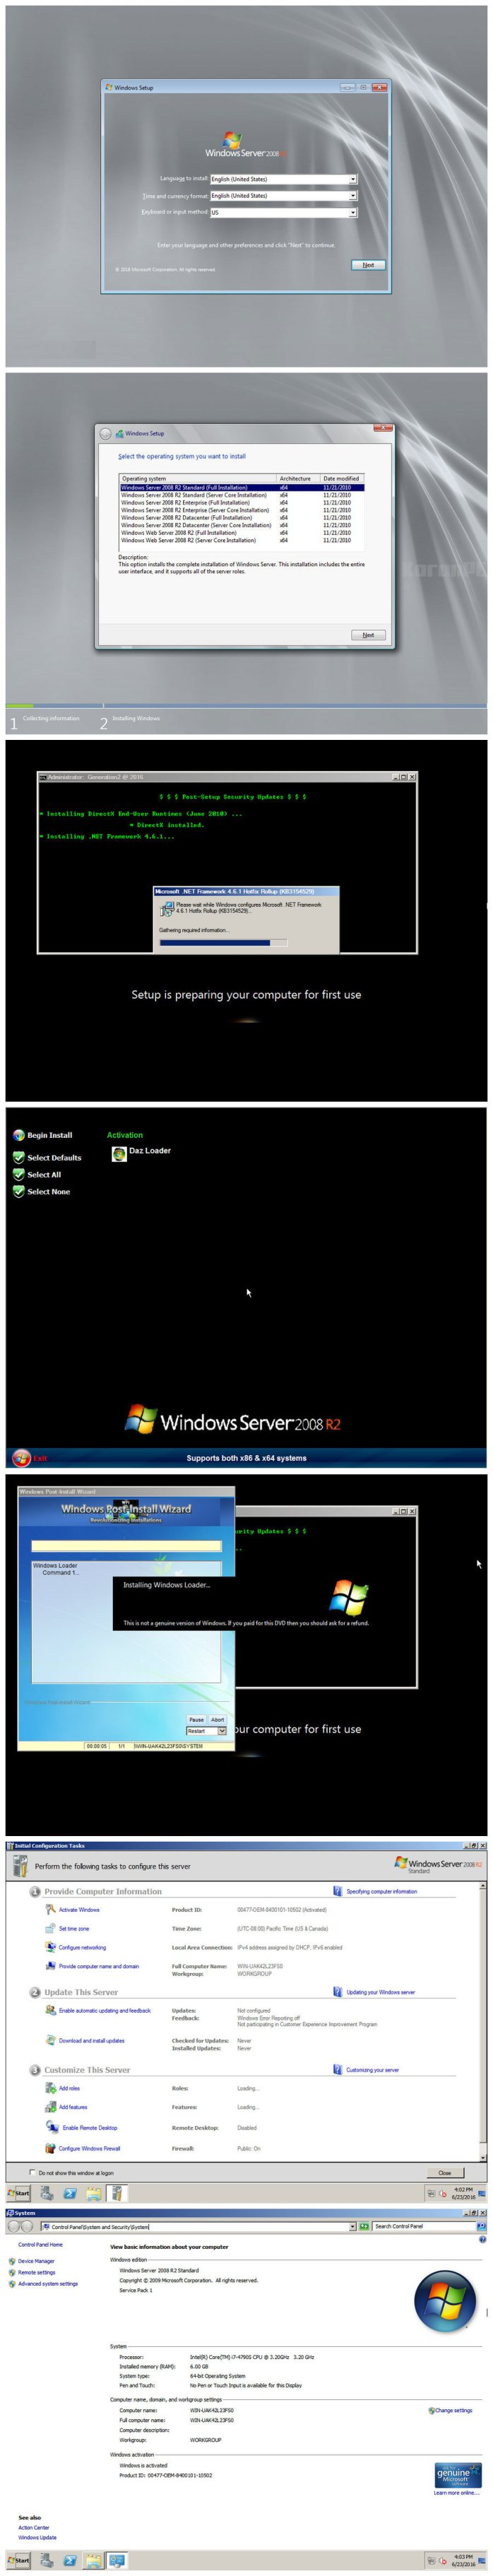 Windows Server 2008 R2 SP1 OS